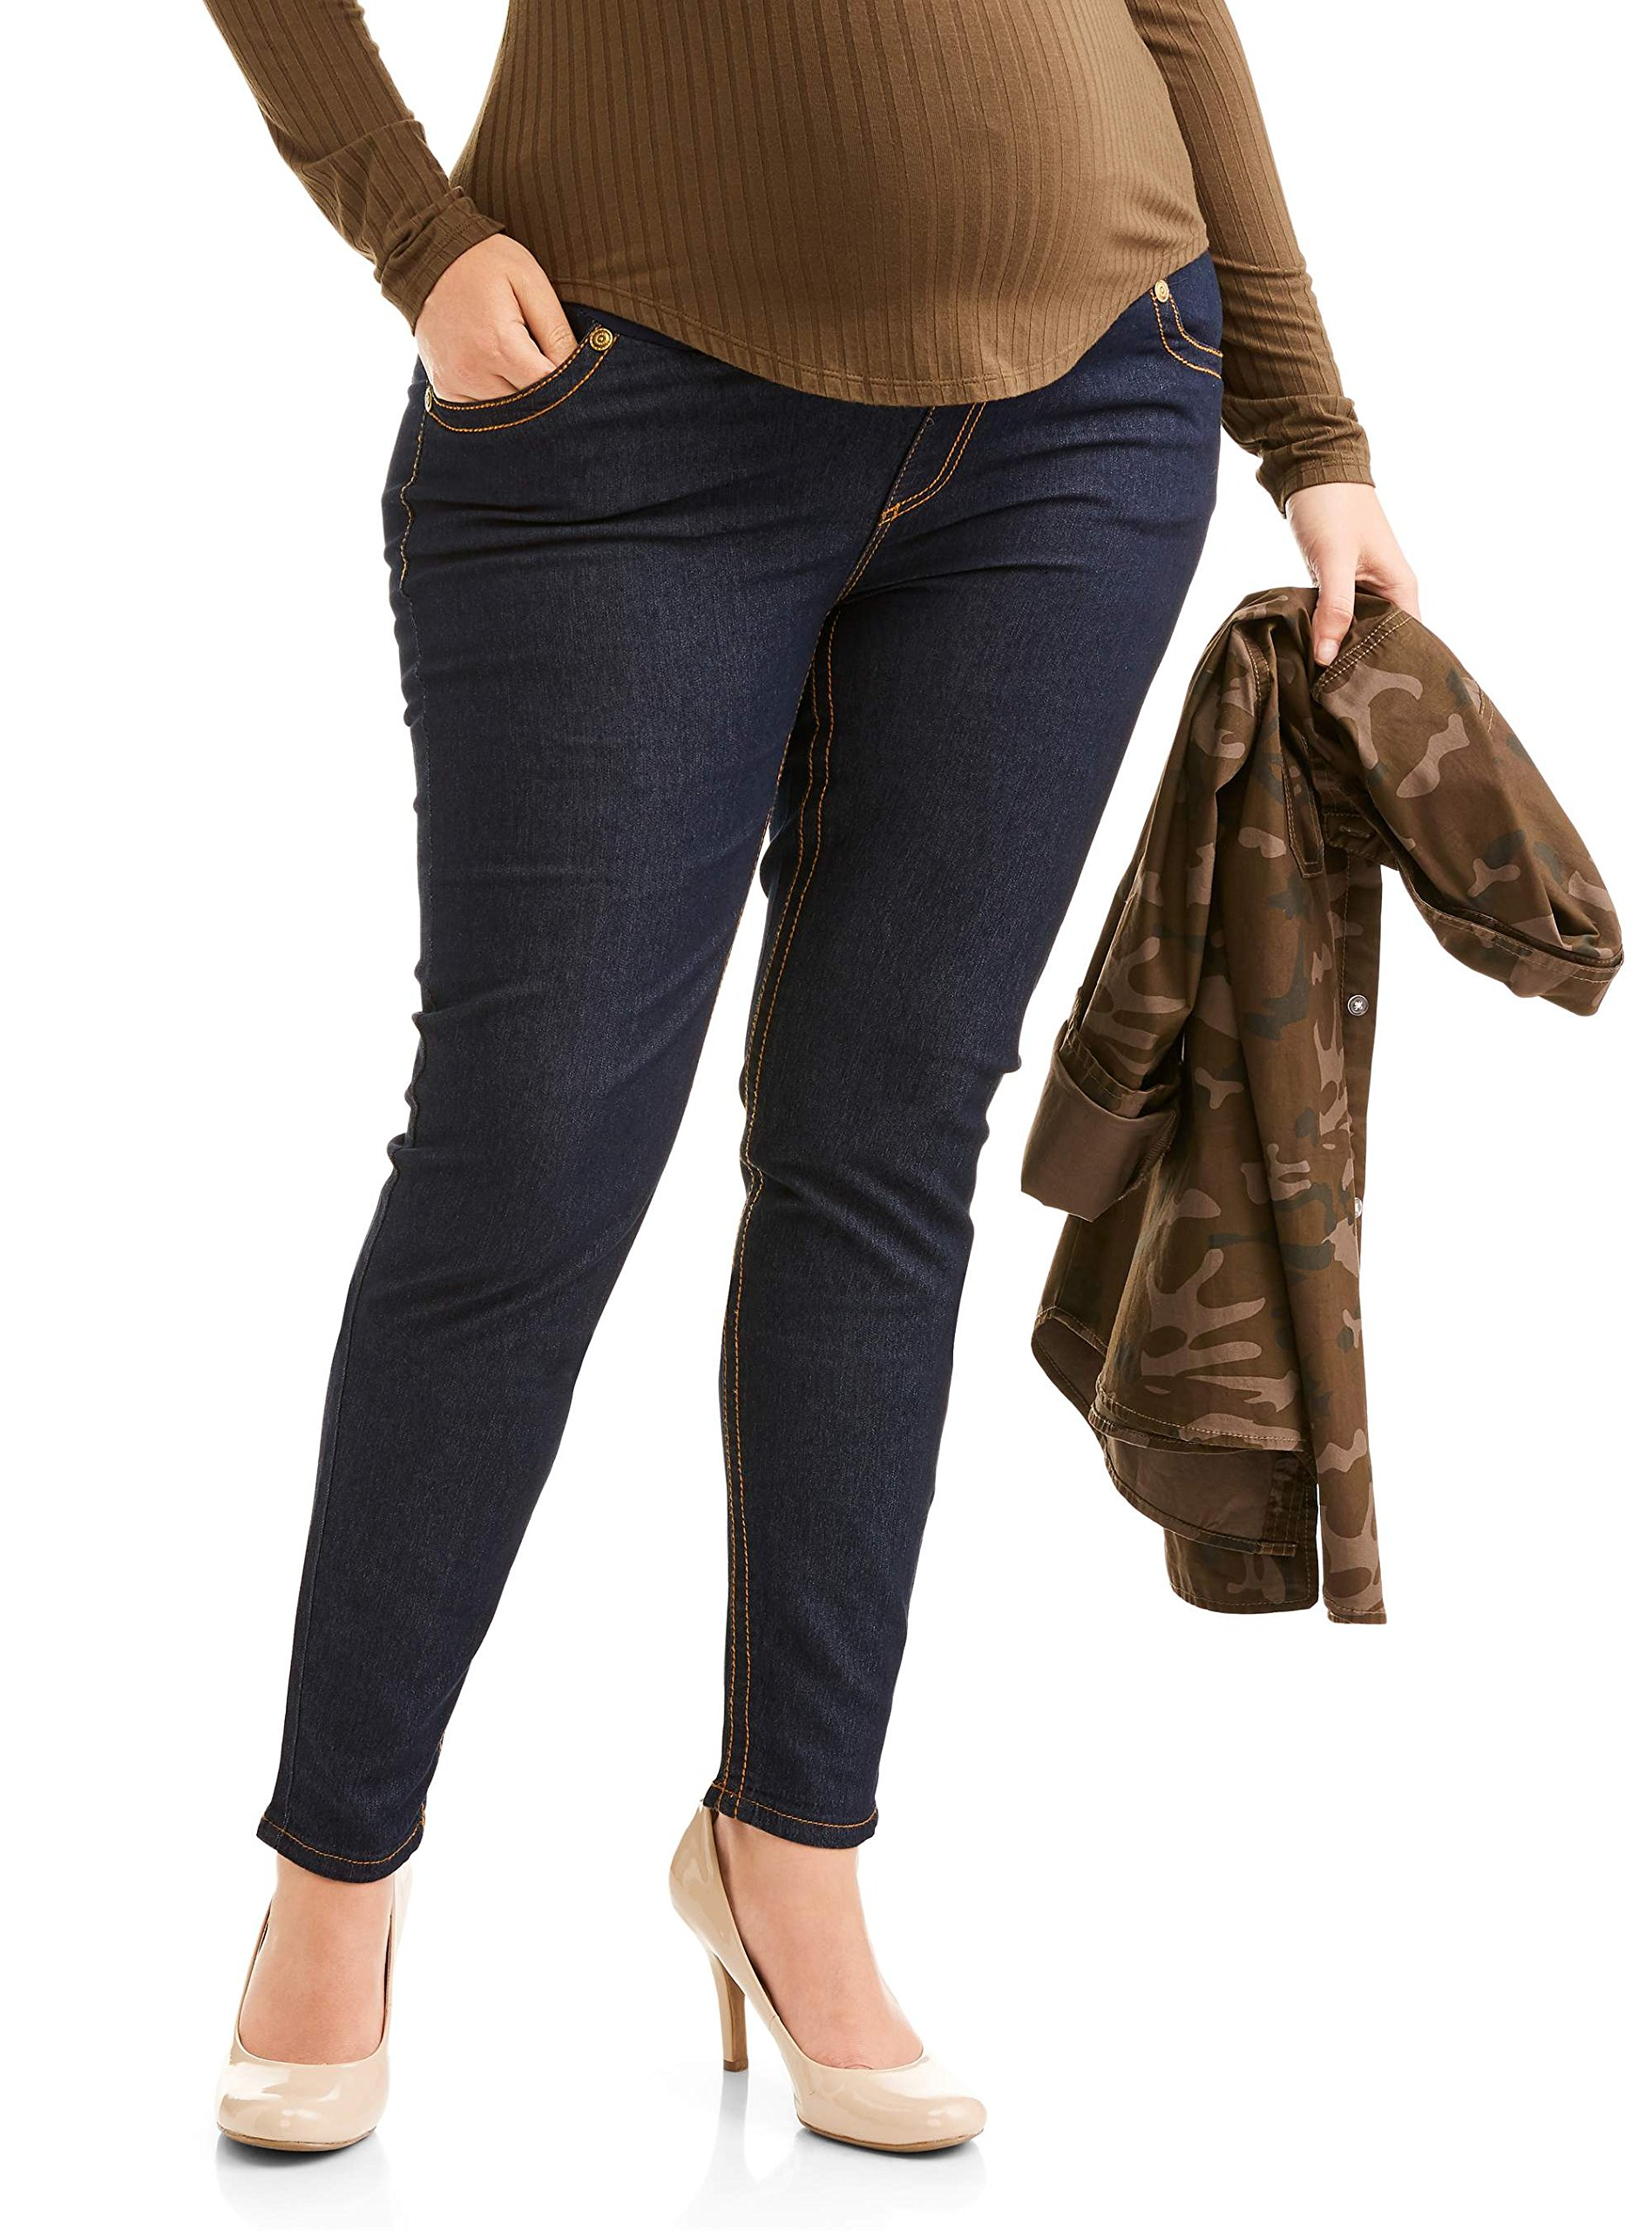 RUMOR HAS IT Maternity Embroidered Skinny Over The Belly Jeans (Large, Rinse)